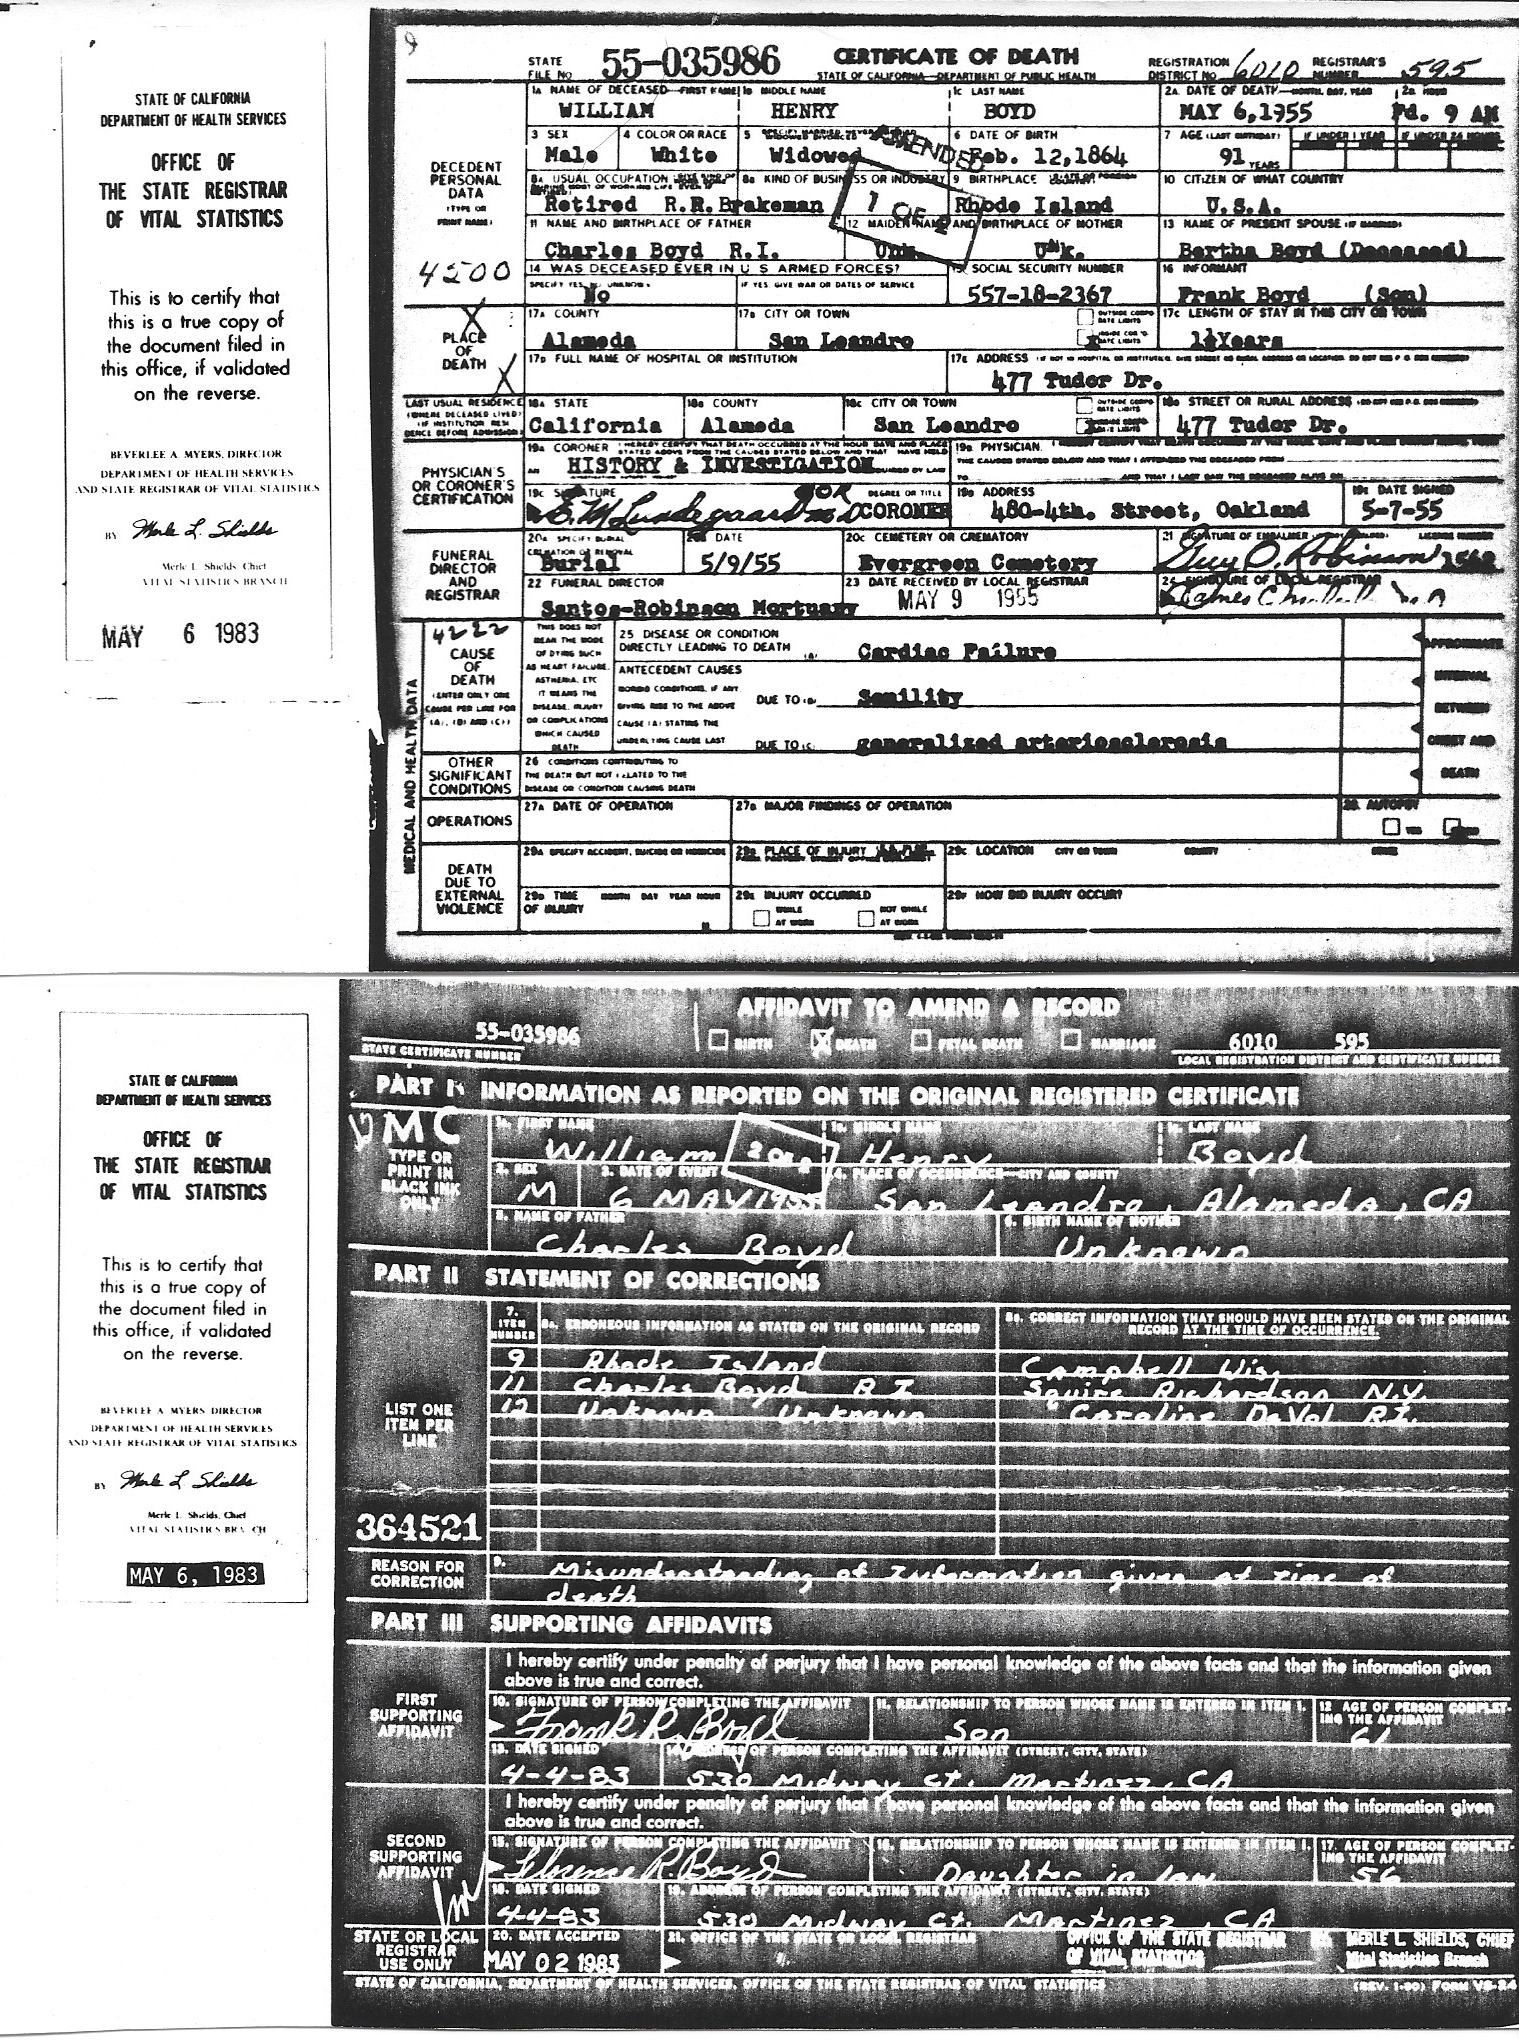 birth  marriage  and death certificates related to the